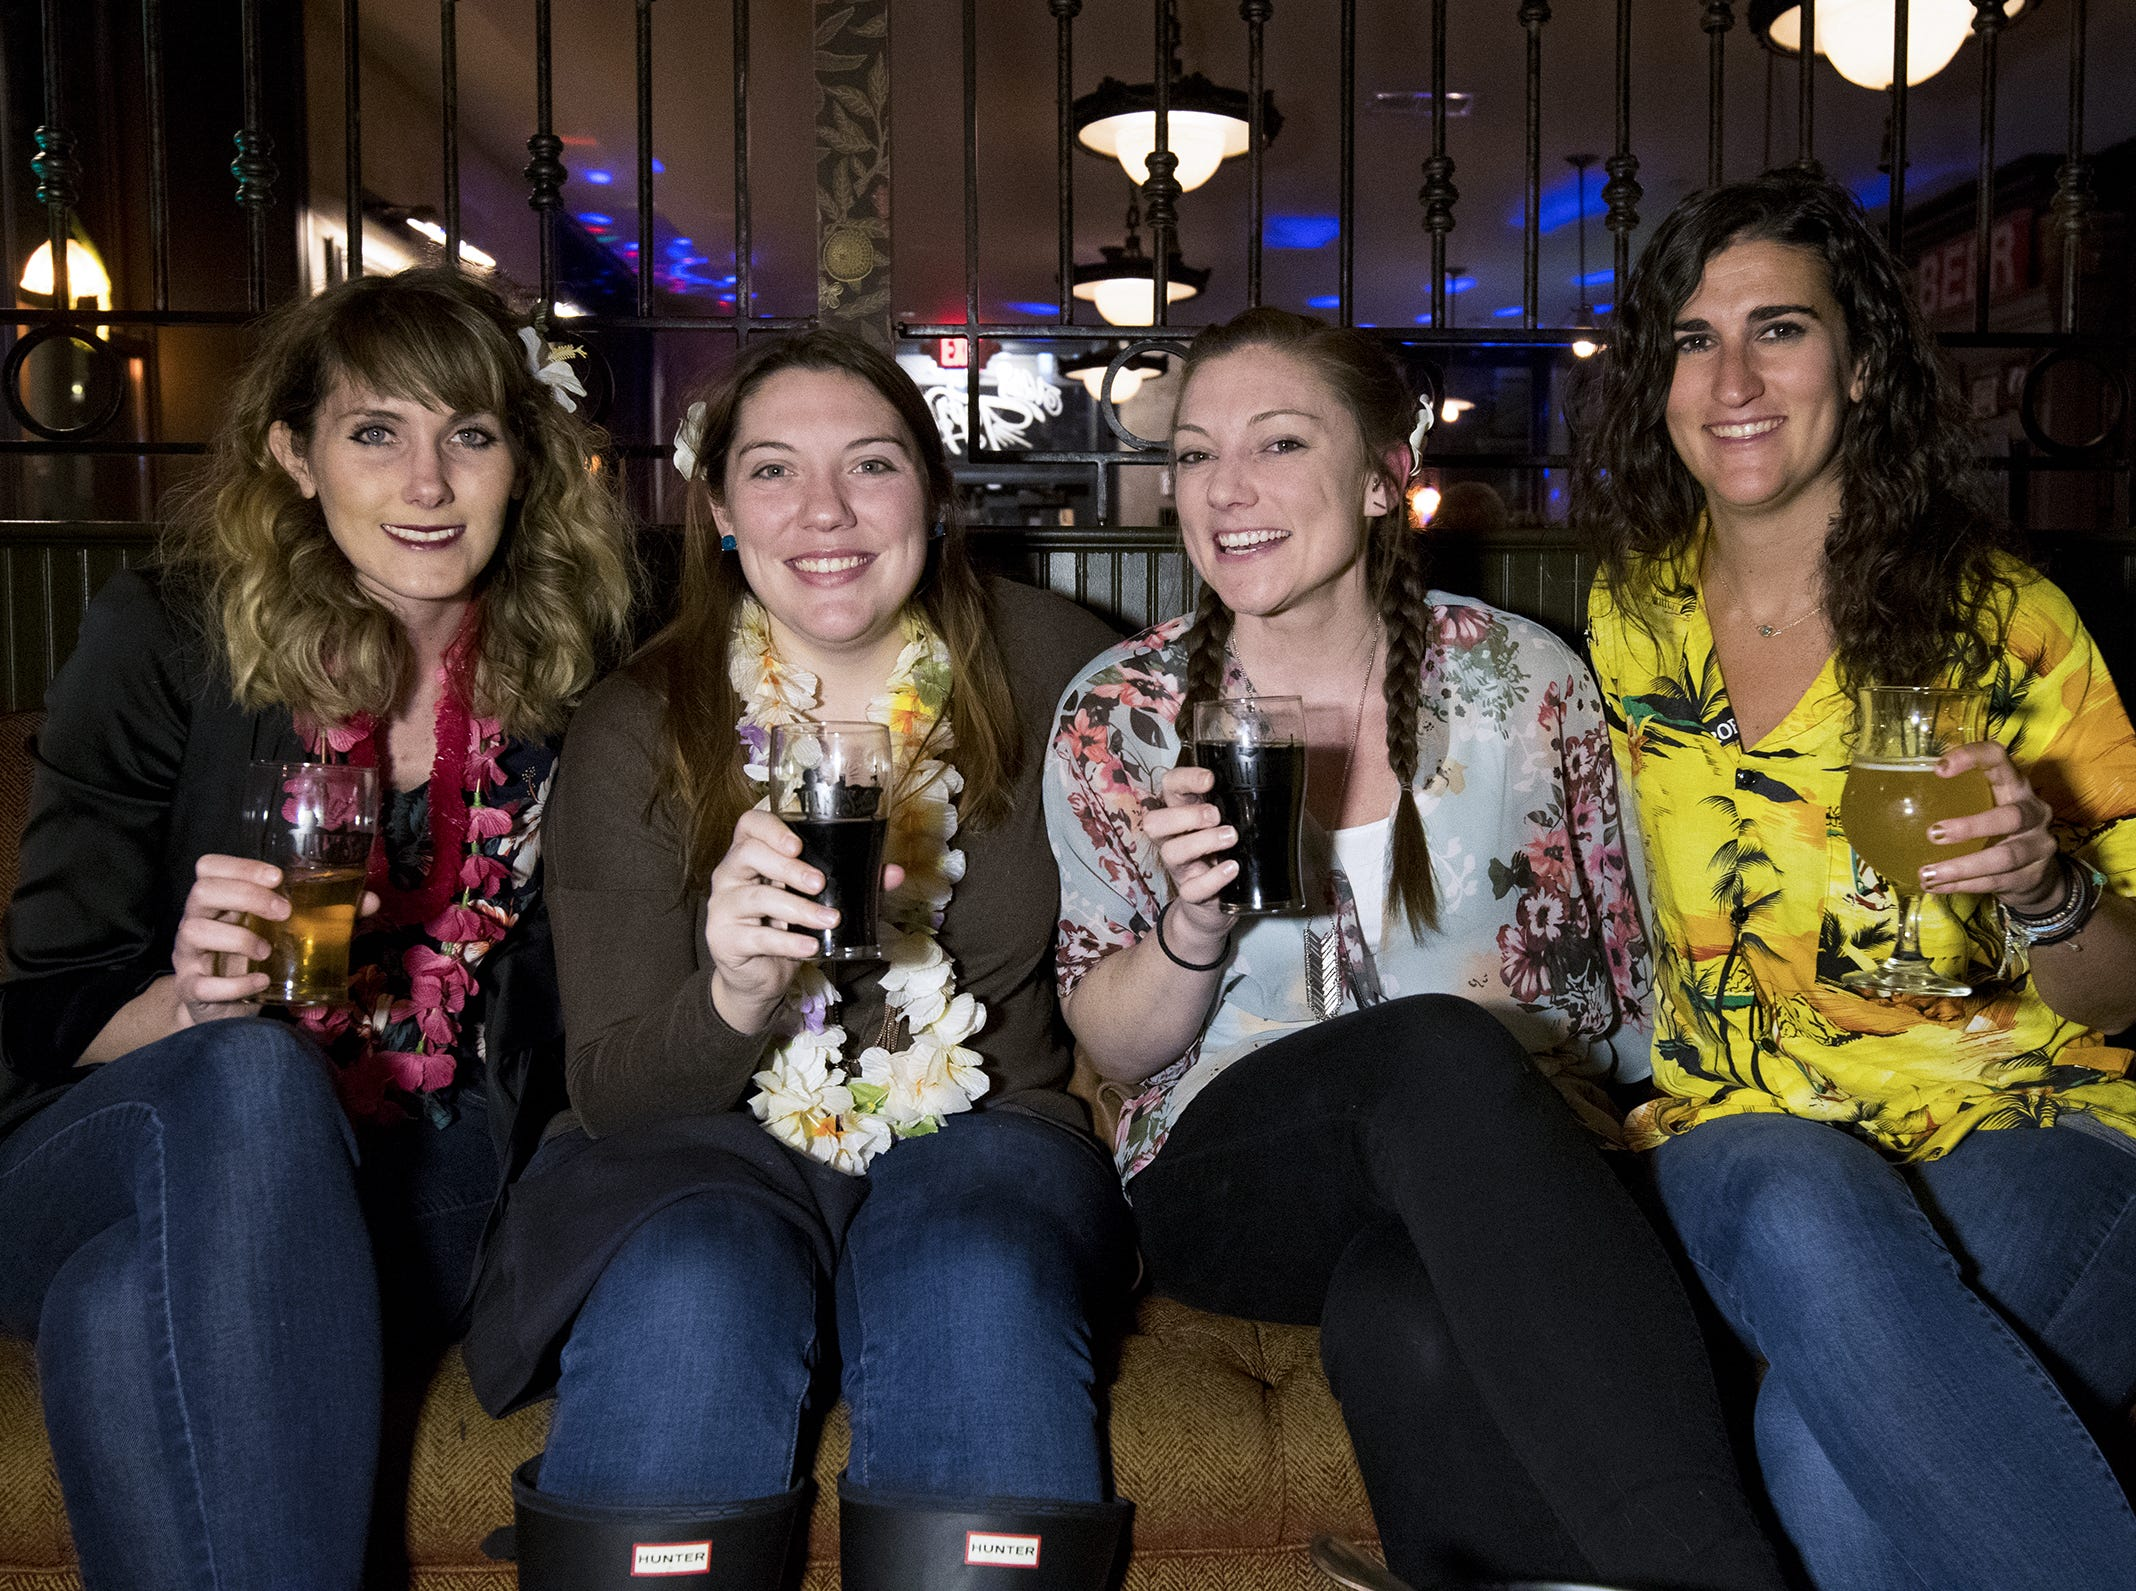 Alexis Roark, Sarah Pendleton, Erin Dunn and Jessica Shvarts trade coats and gloves for leis and Hawaiian shirts during Beach Night at Taft's Ale House January 17, 2019 in Cincinnati, Ohio.